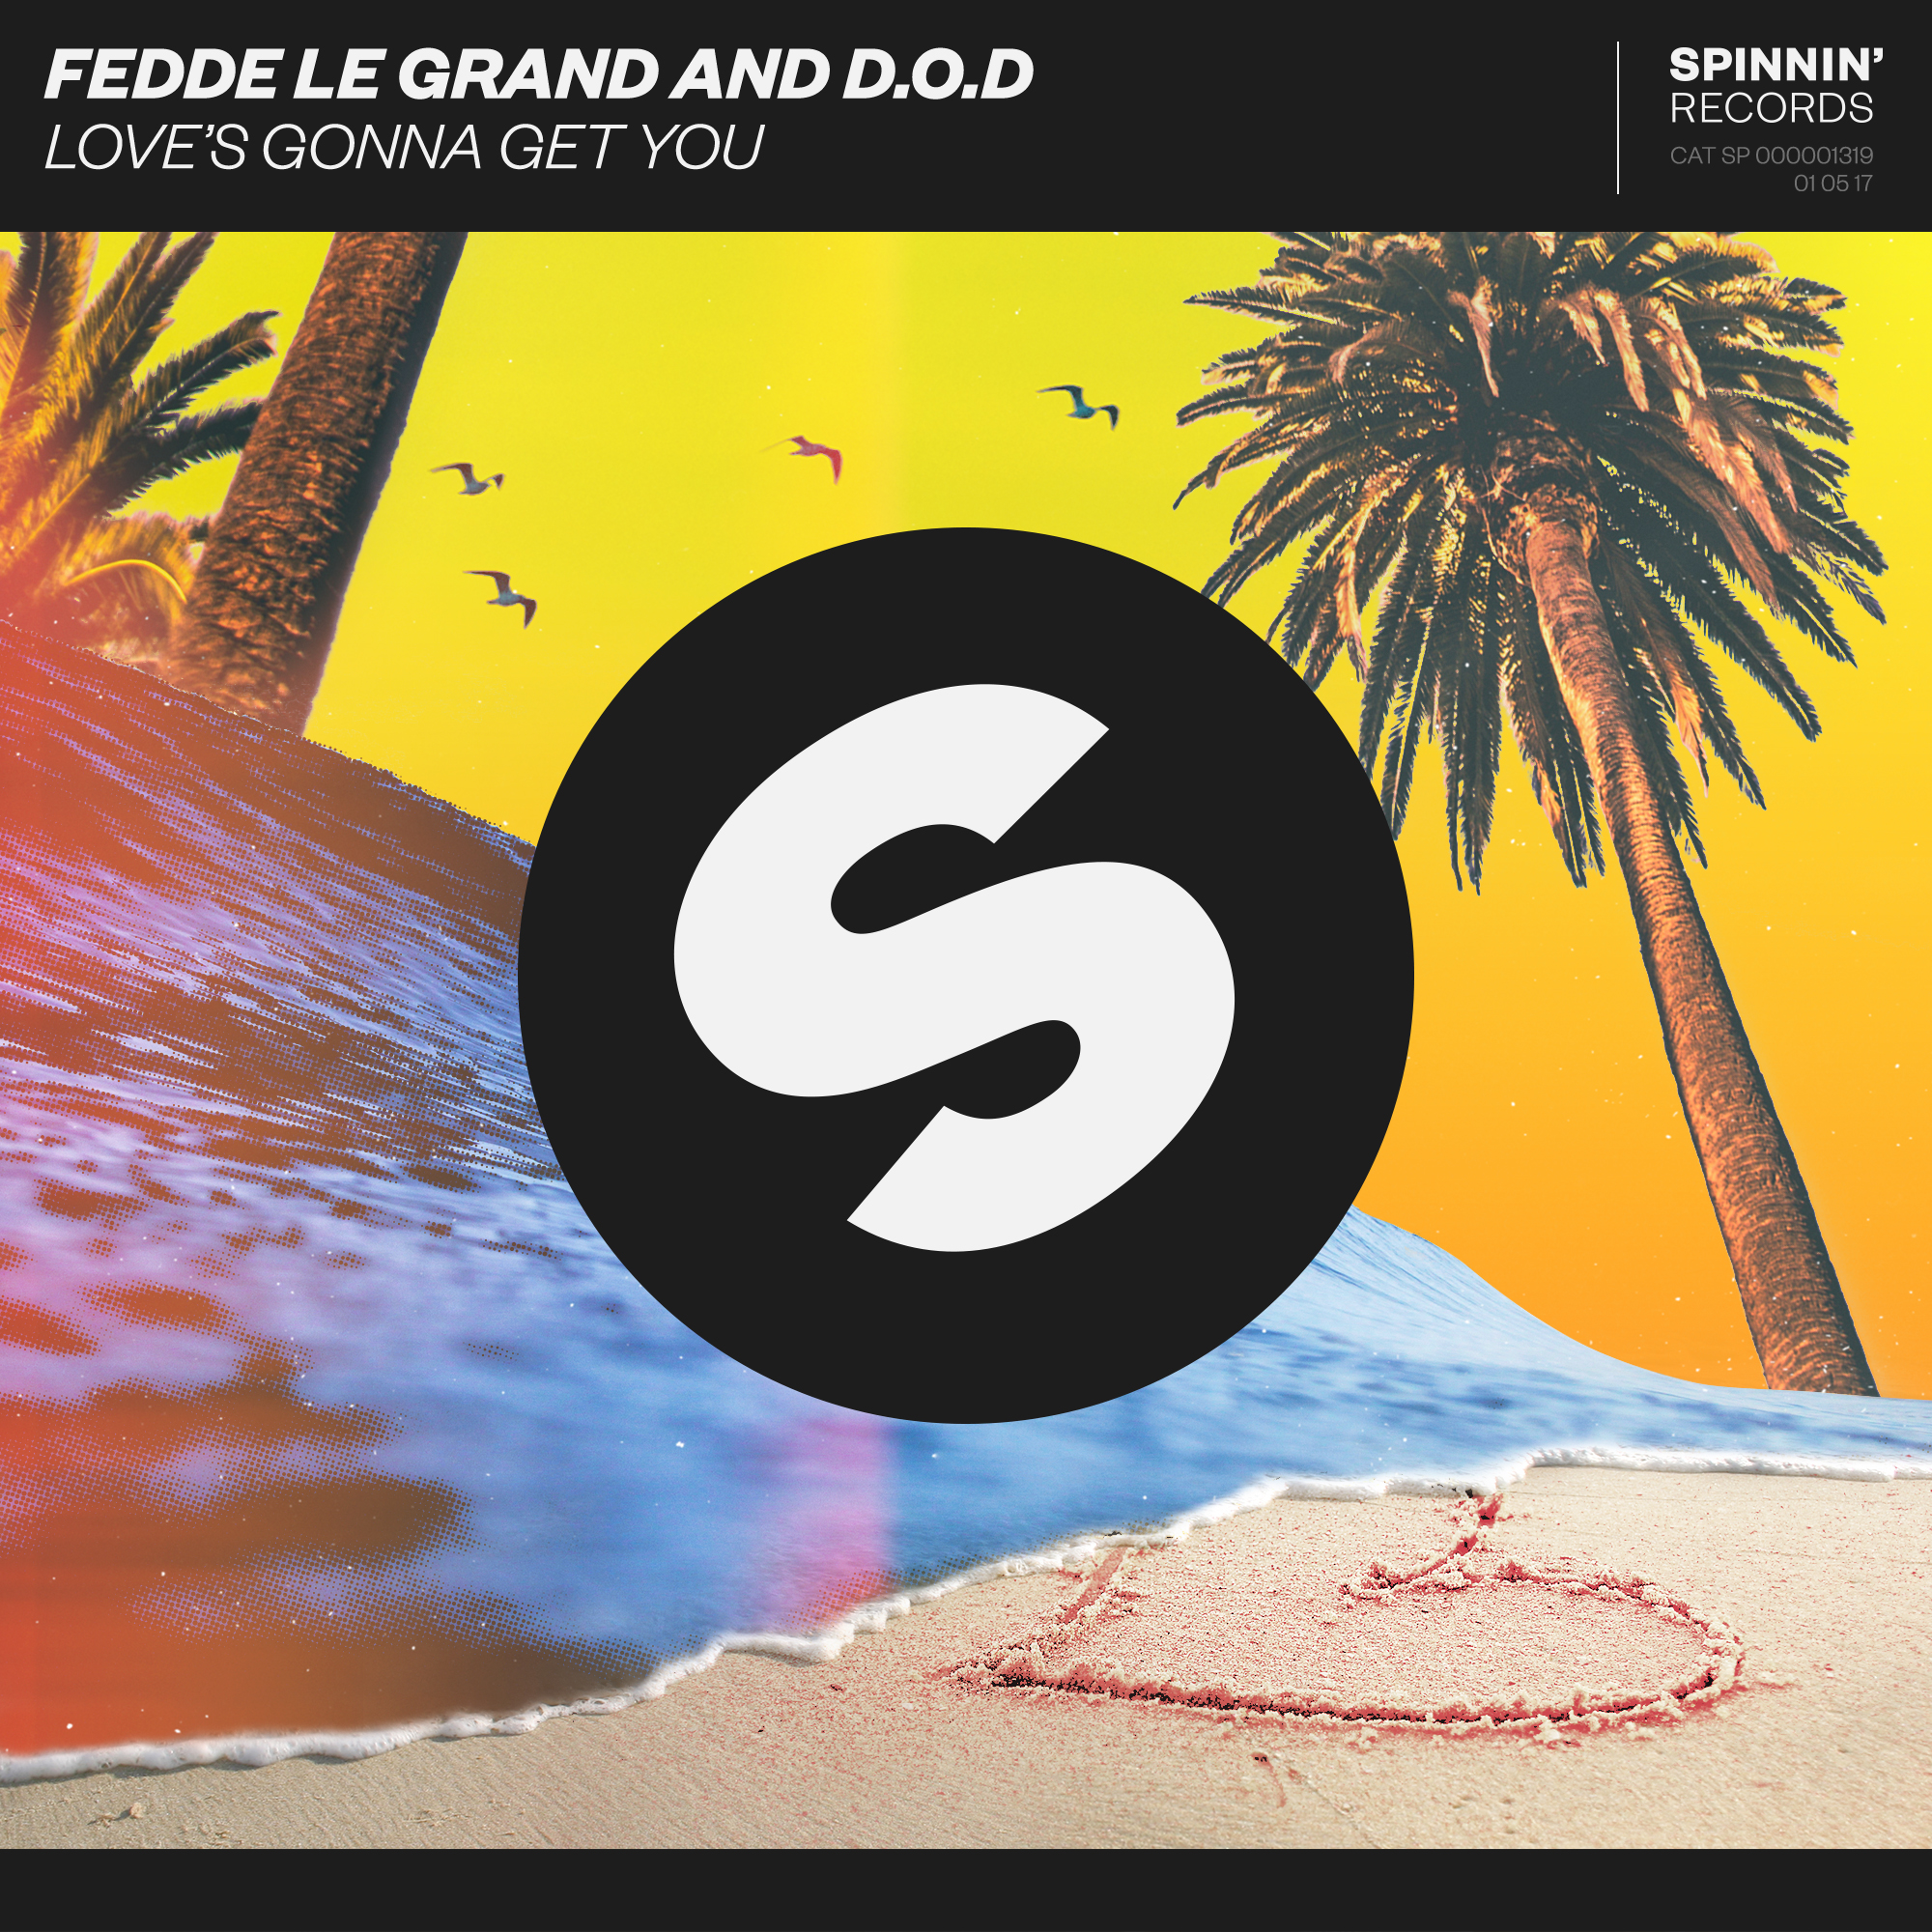 FEDDE LE GRAND AND D.O.D – LOVE'S GONNA GET YOU  [OUT NOW ON SPINNIN' RECORDS]